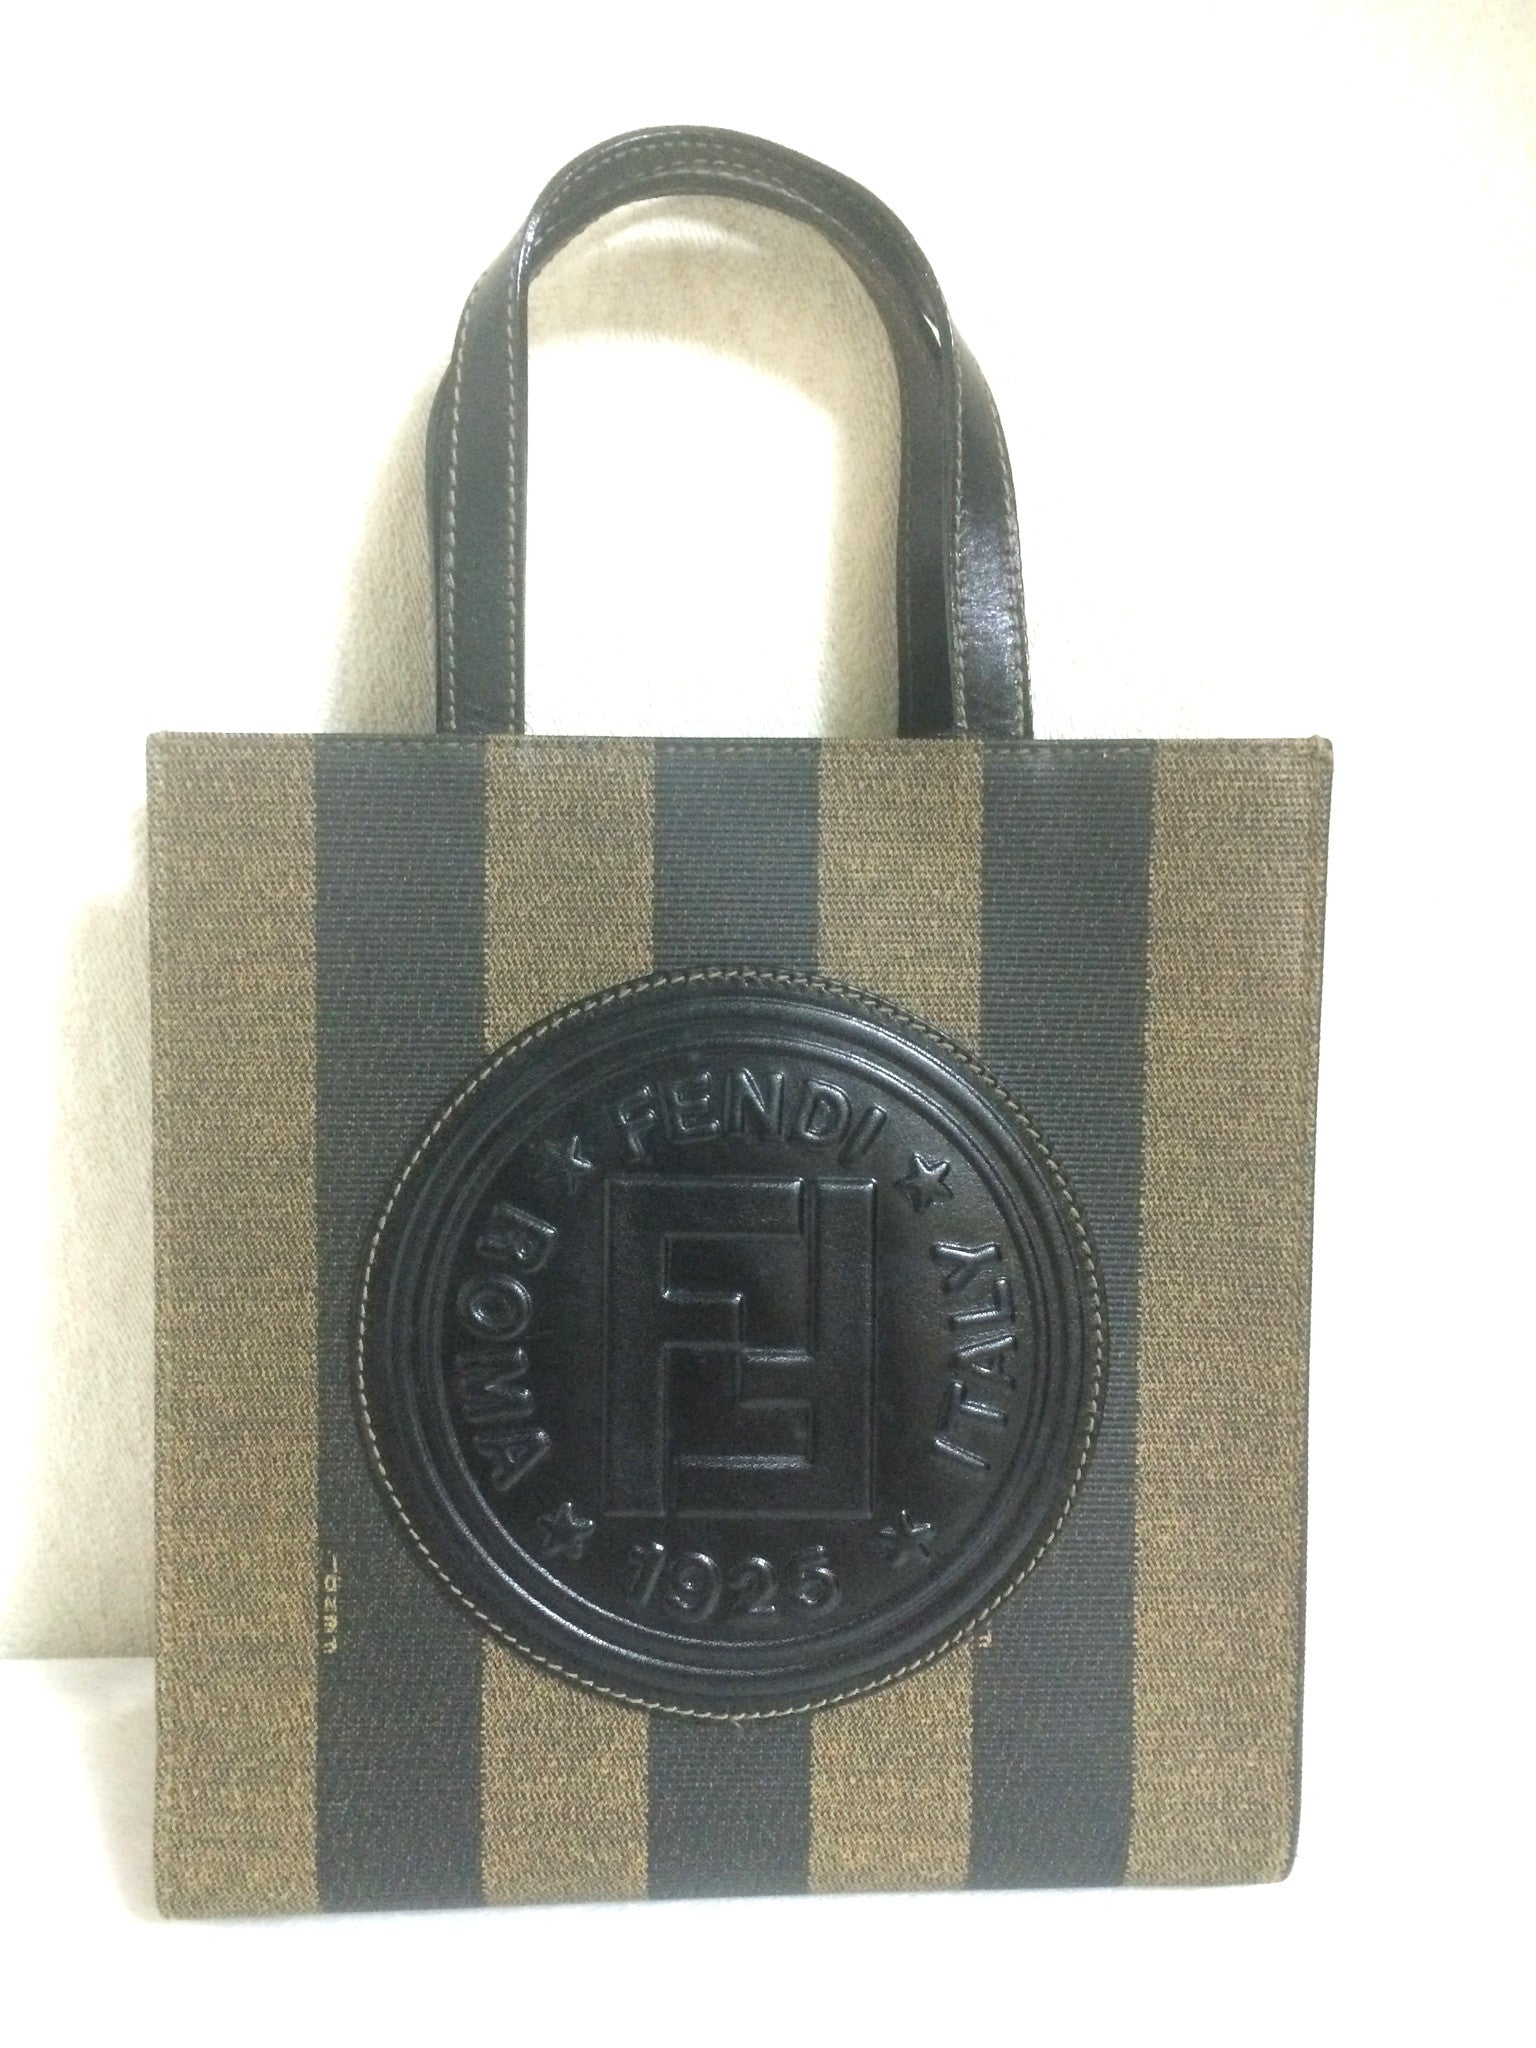 MINT. Vintage FENDI pecan khaki and black vertical stripe, mini shopping tote bag with a round leather logo mark. Unisex and daily use.